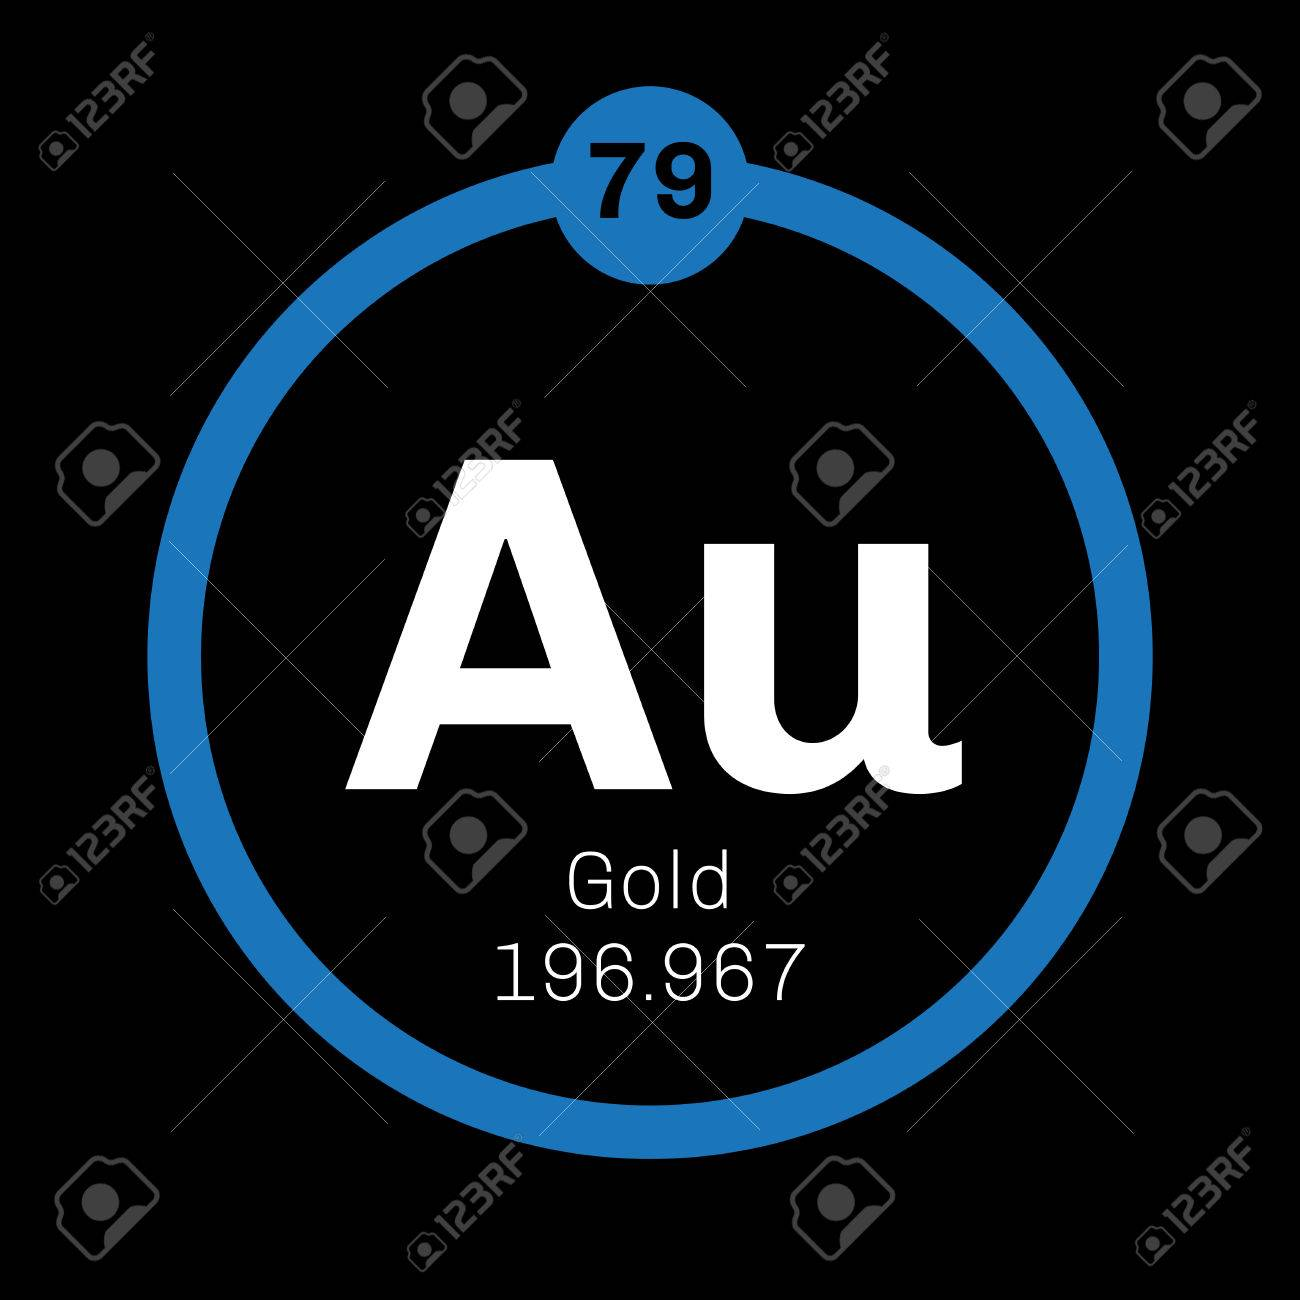 Gold chemical element one of the least reactive chemical elements gold chemical element one of the least reactive chemical elements colored icon with atomic urtaz Image collections